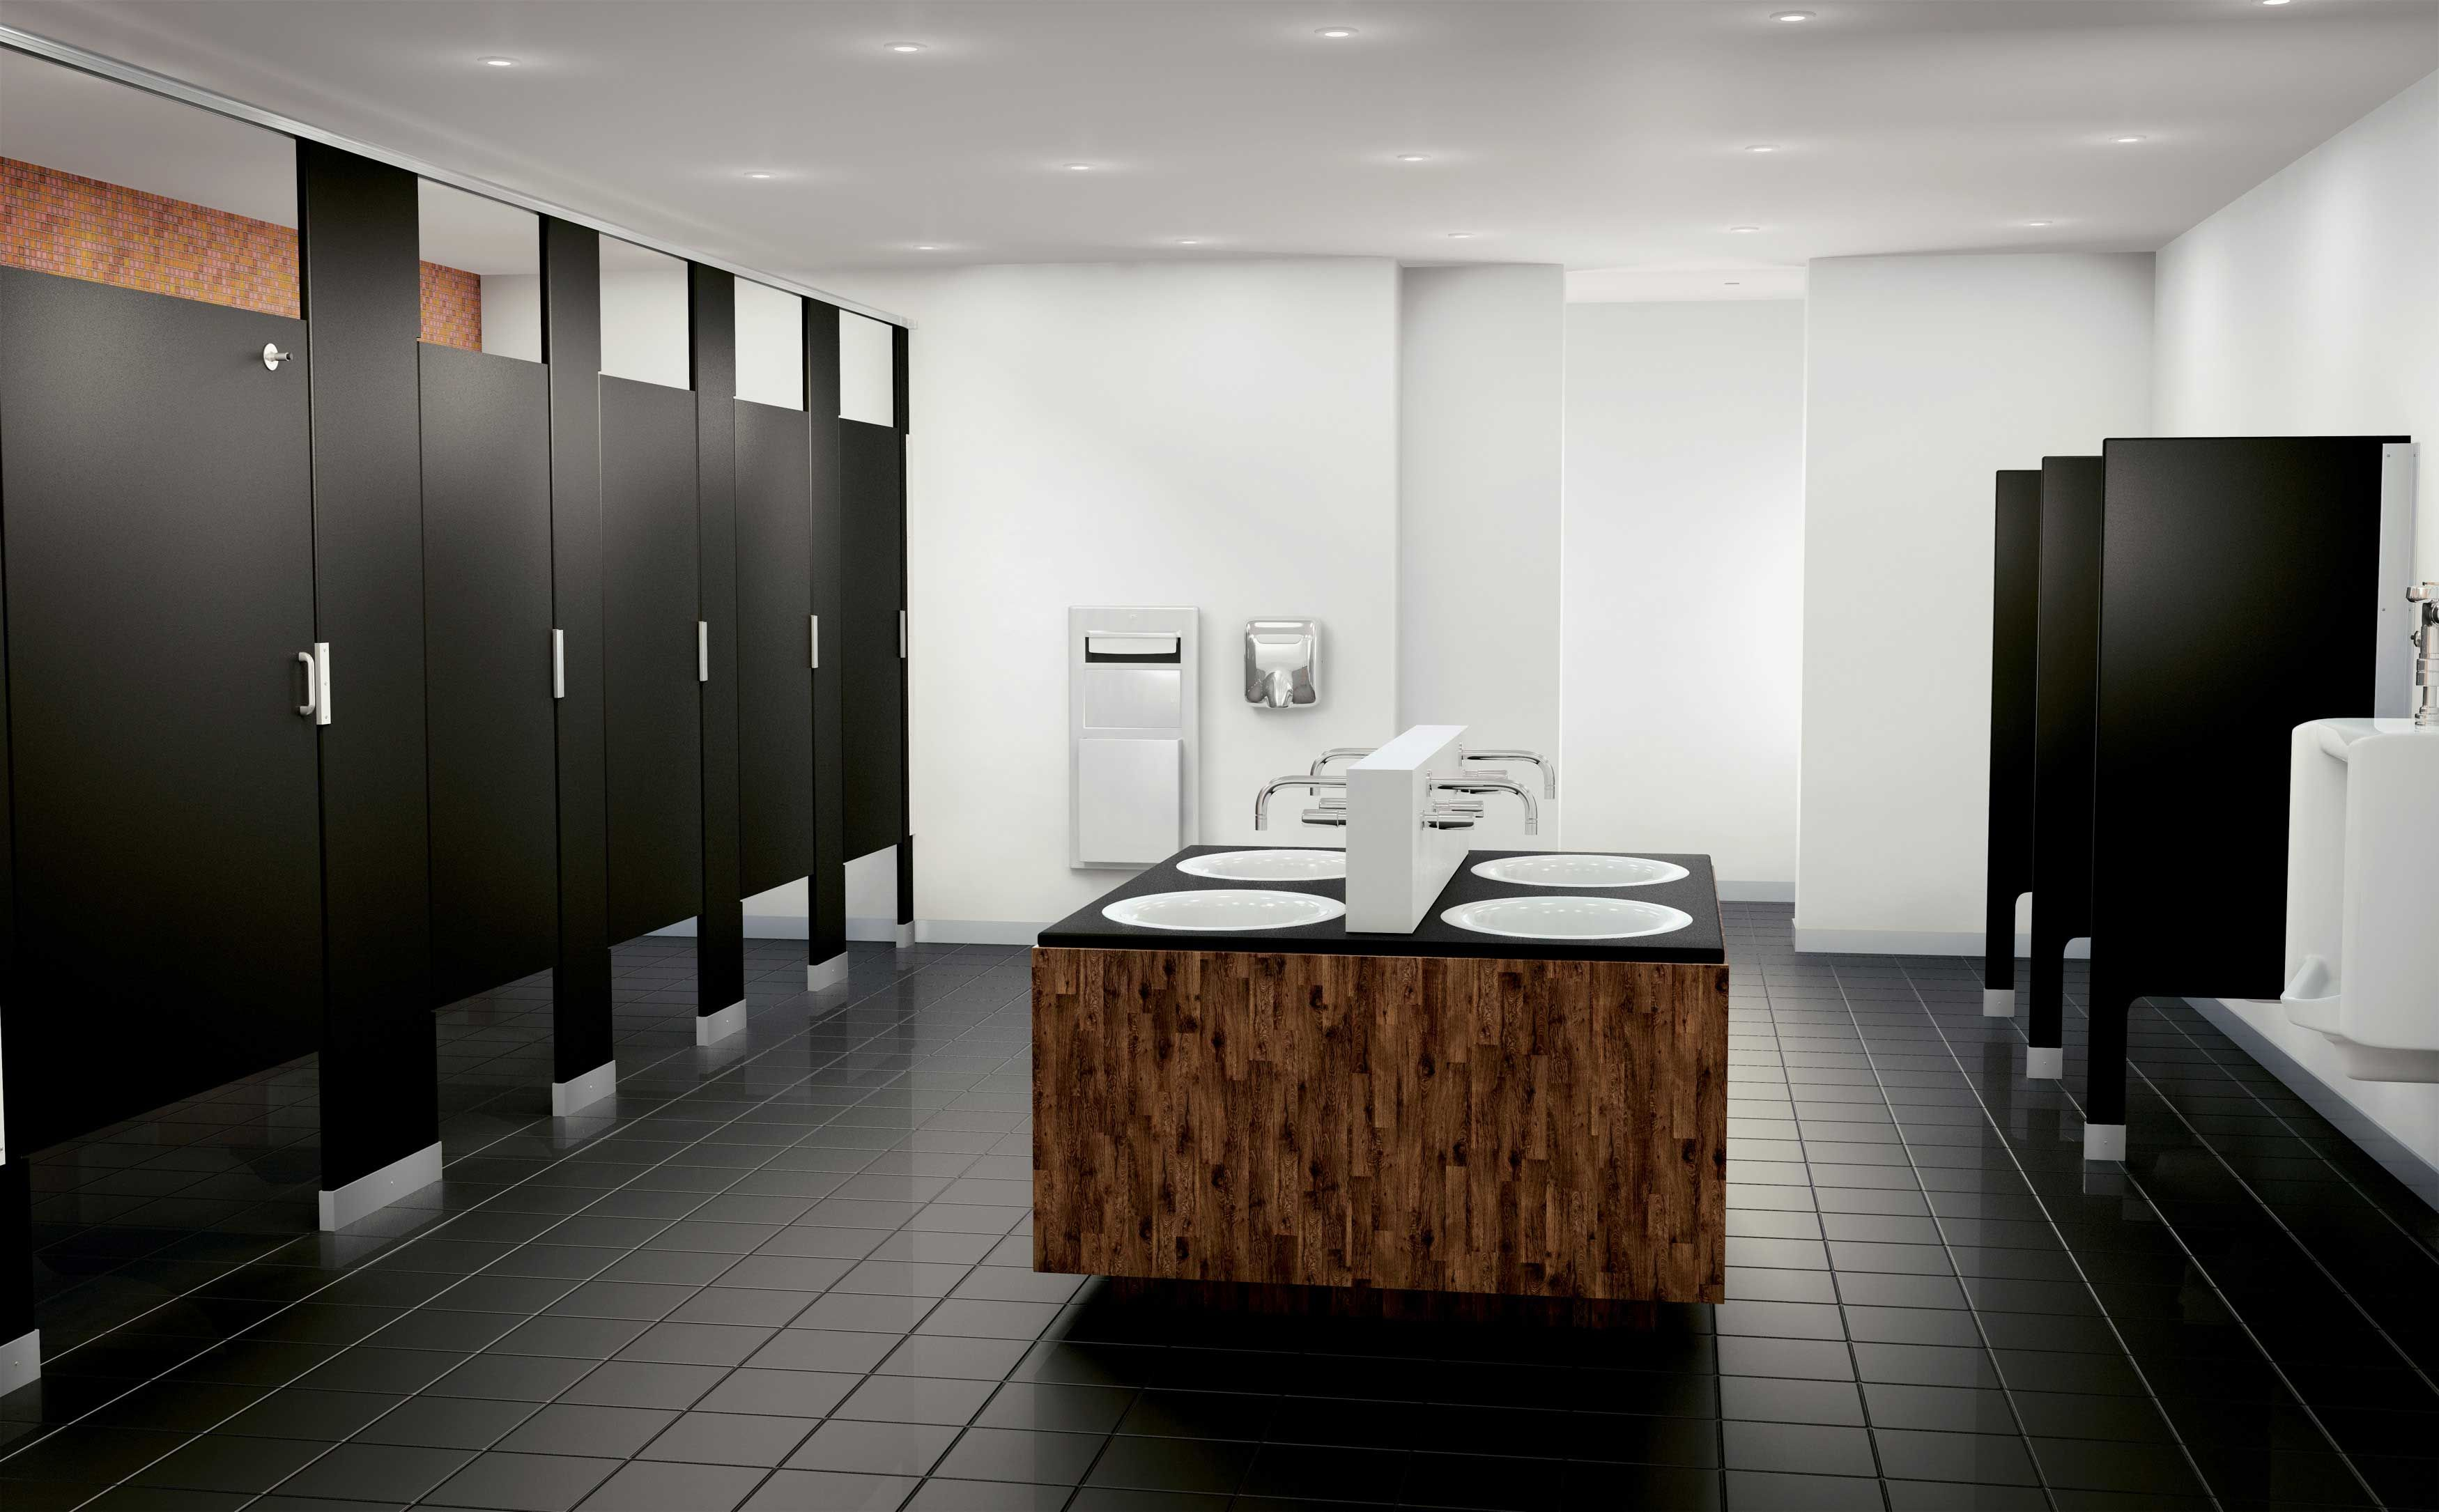 Commercial Bathroom Partitions Interior information on buying toilet partitions for your business type